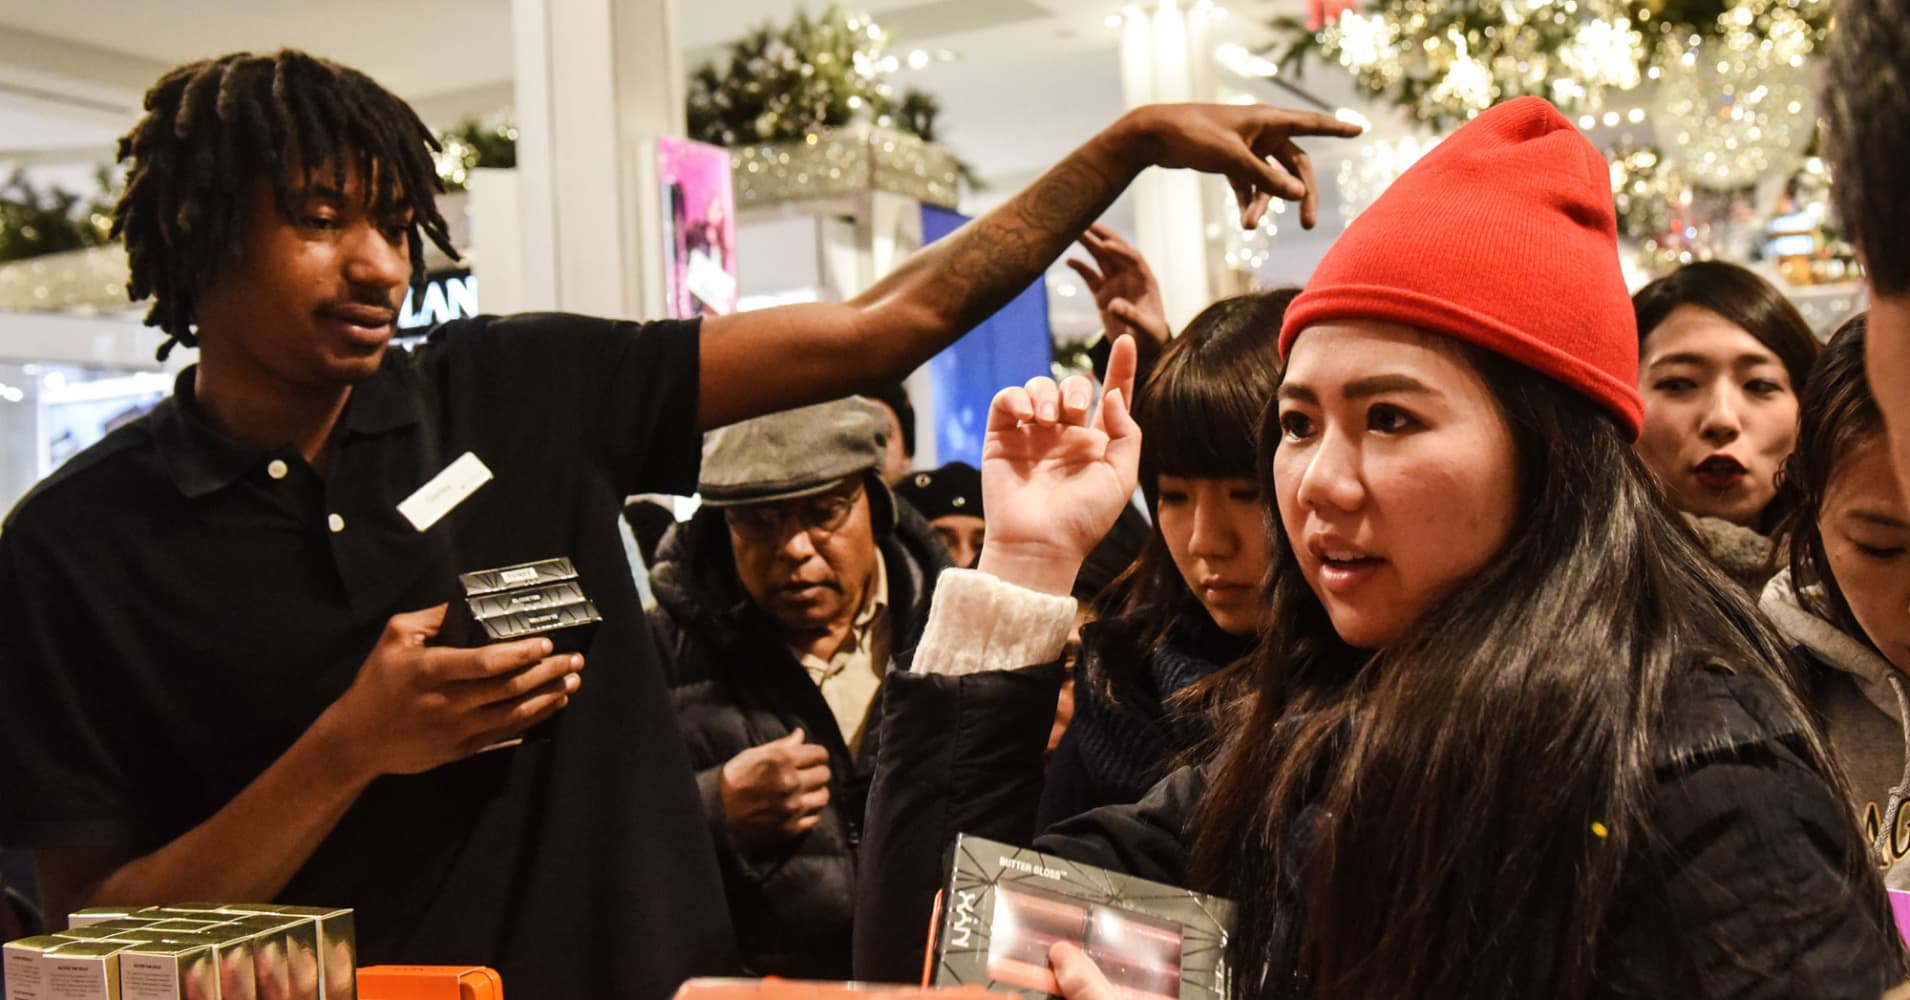 Macy's will hire 7,000 more workers after Black Friday rush